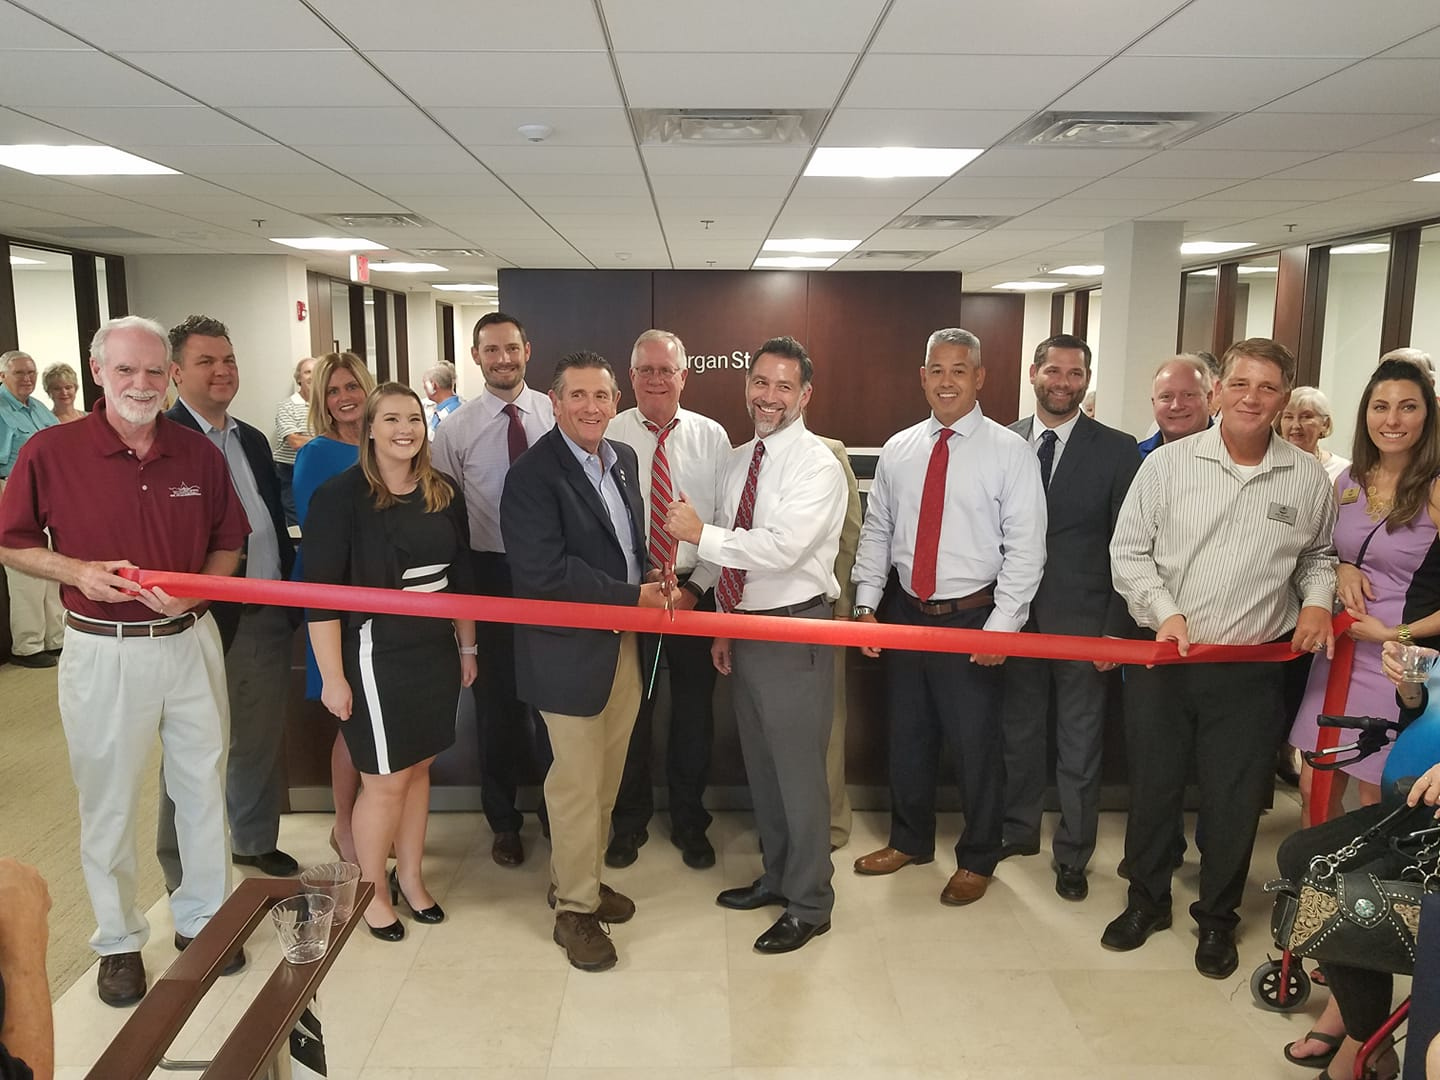 Morgan-Stanley-Ribbon-Cutting-6.28.18.jpg